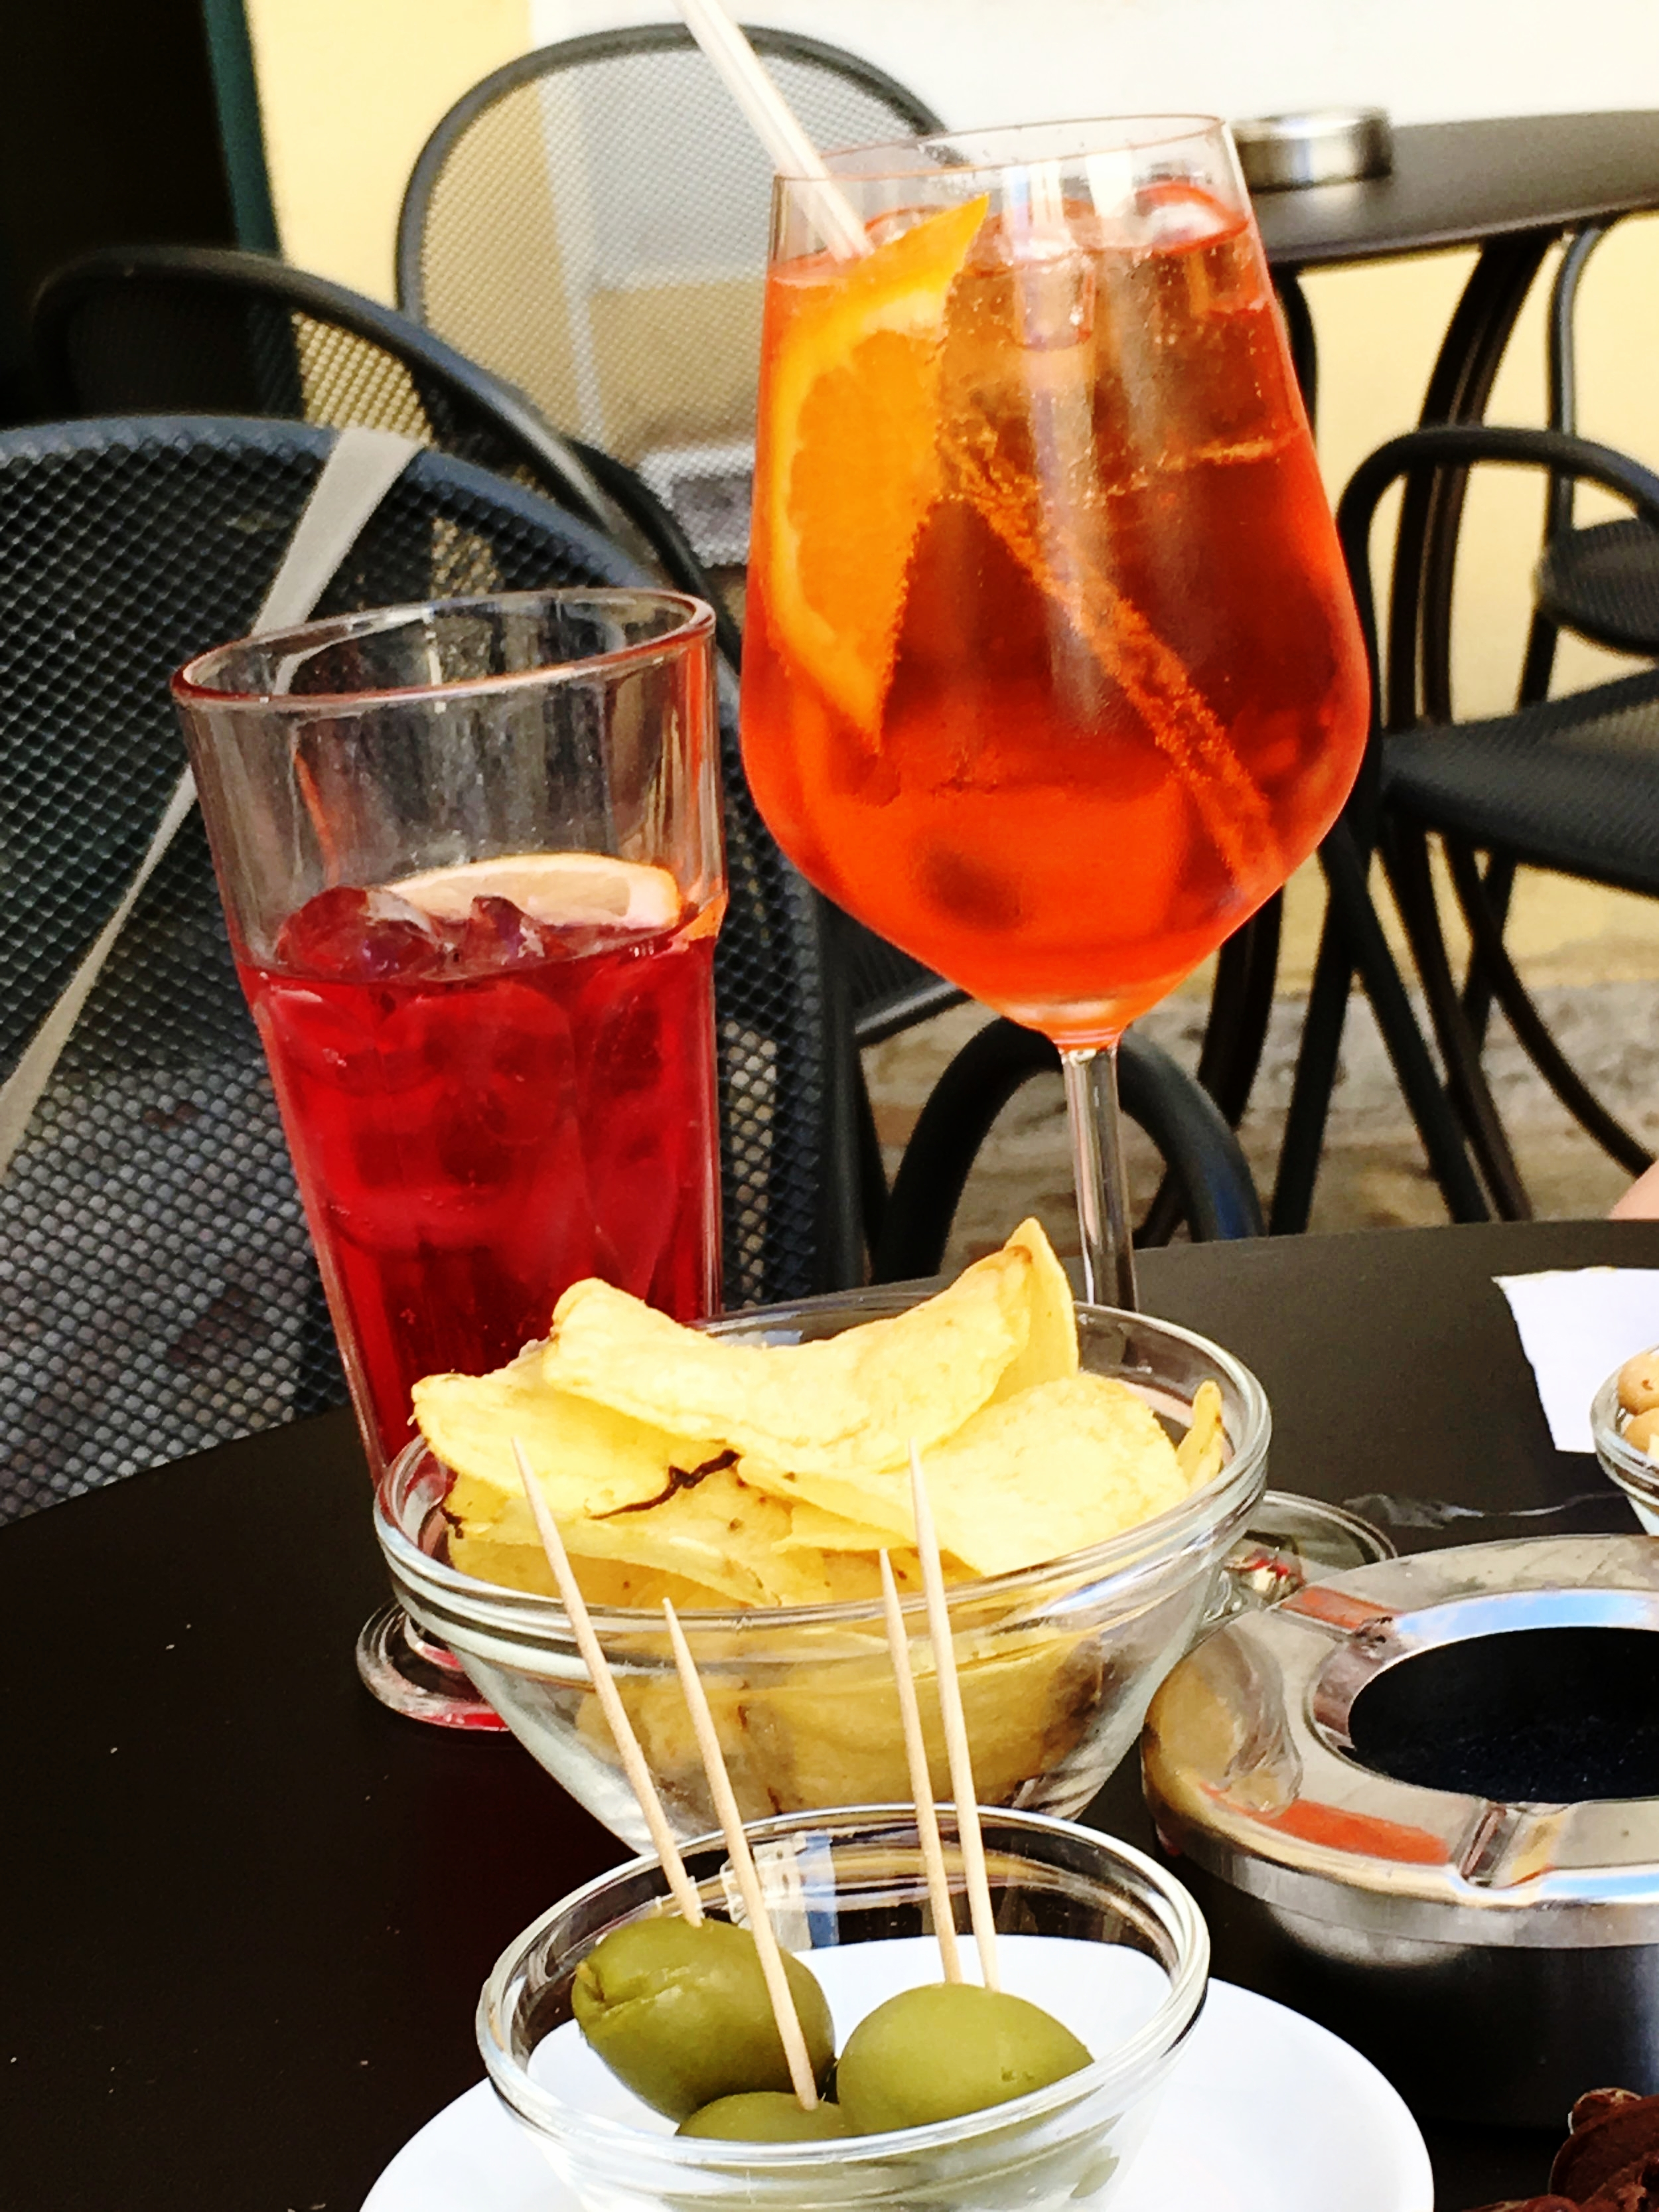 Aperol Spritz - Pour prosecco and Aperol (3 to 1 proportions) into a glass of ice. Stir, add a splash of soda water if desired. Drop in a thin slice of orange.